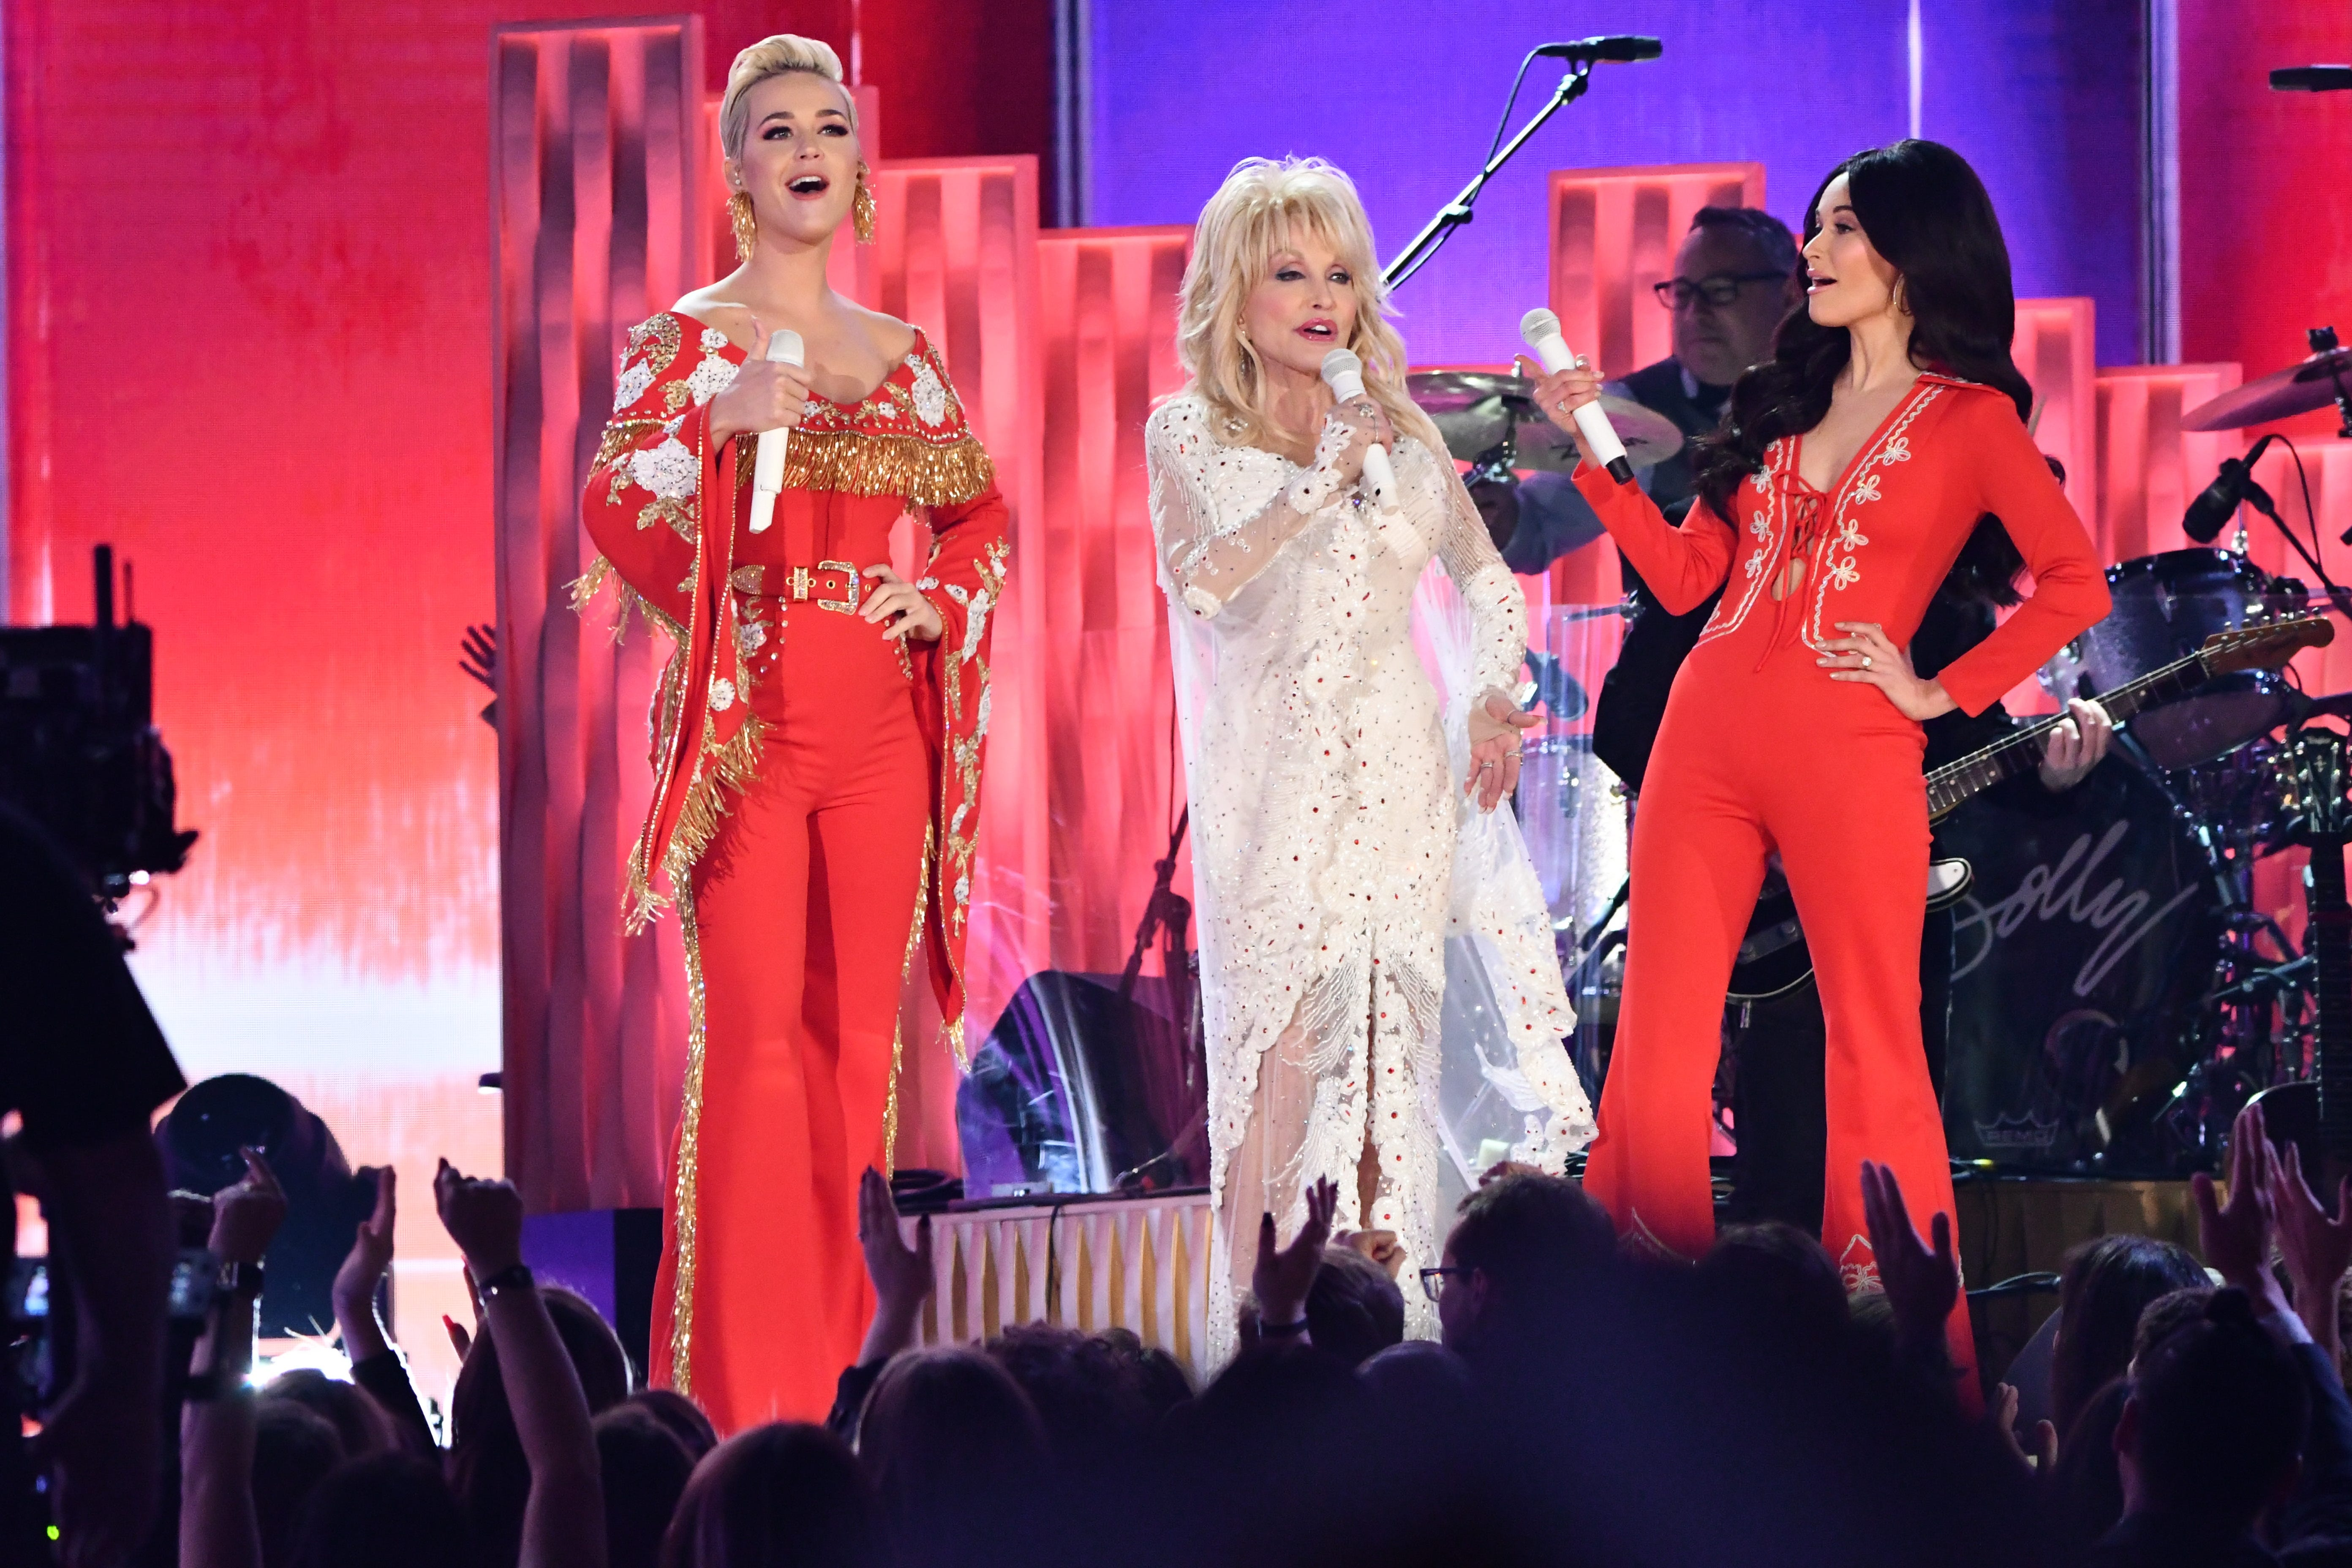 Brutally honest reviews and rankings of every Grammys 2019 performance